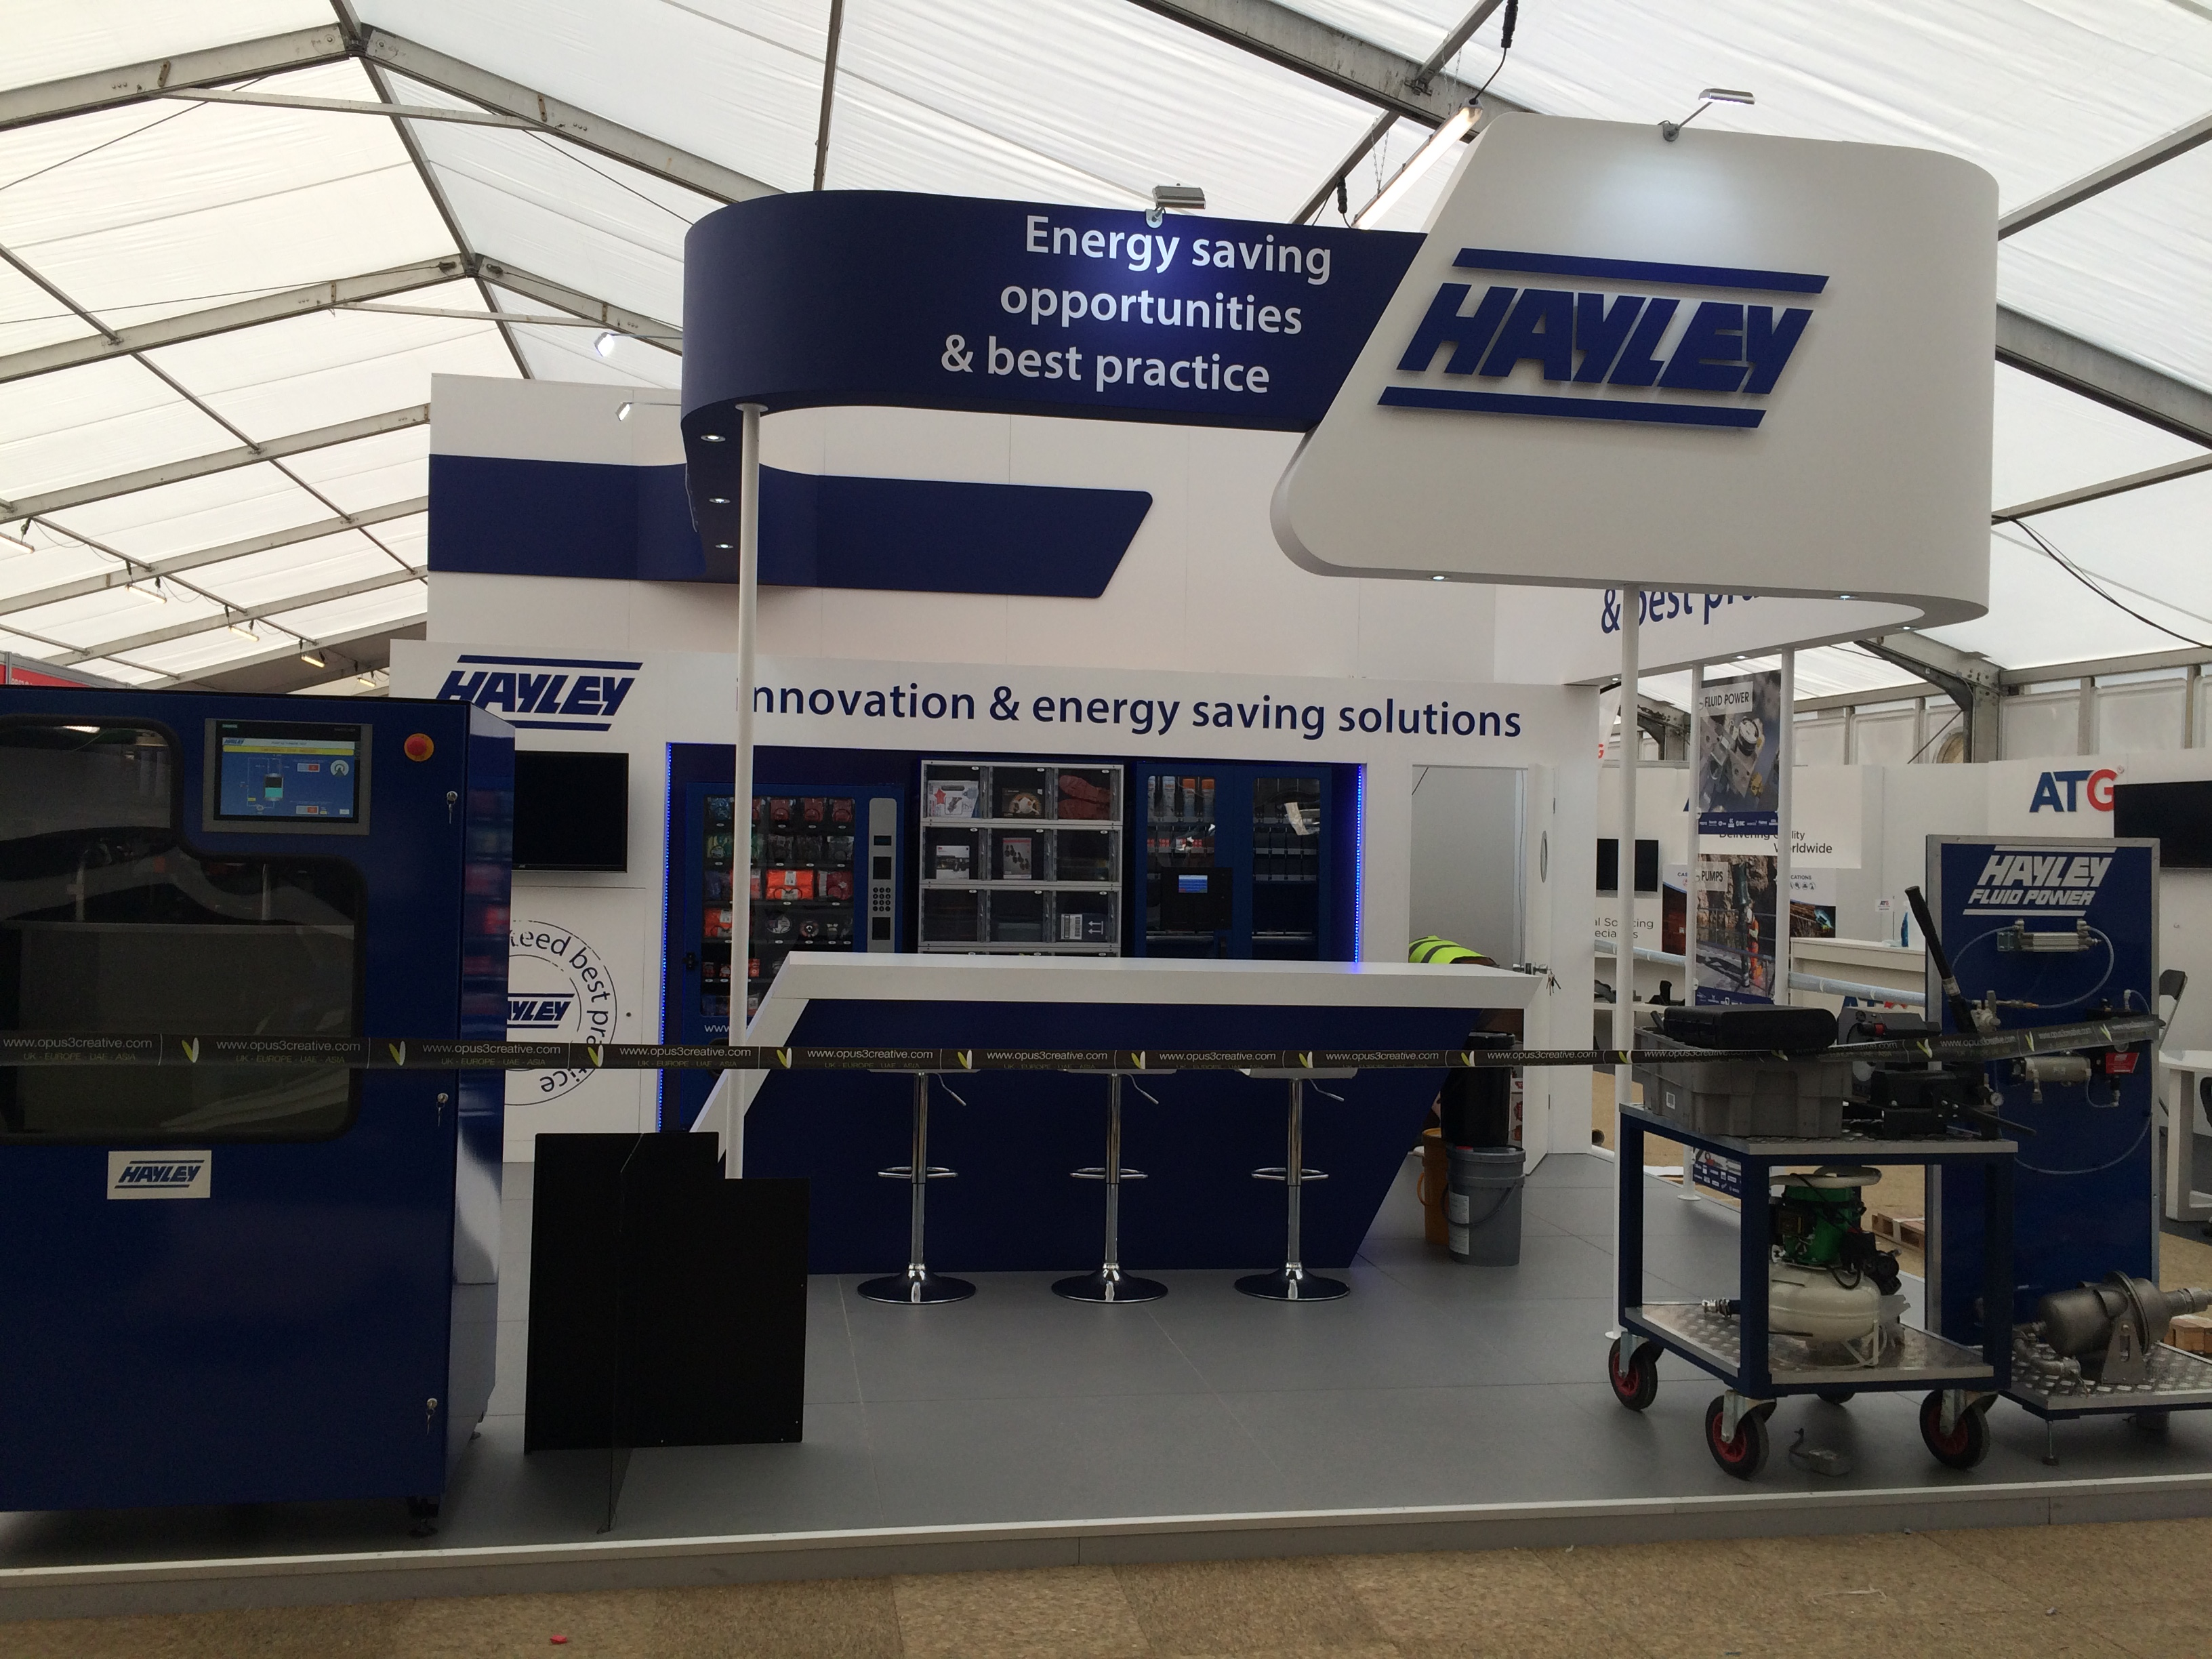 Bespoke exhibition stand design and build for the Hayley Group at Hillhead Derbyshire, UK